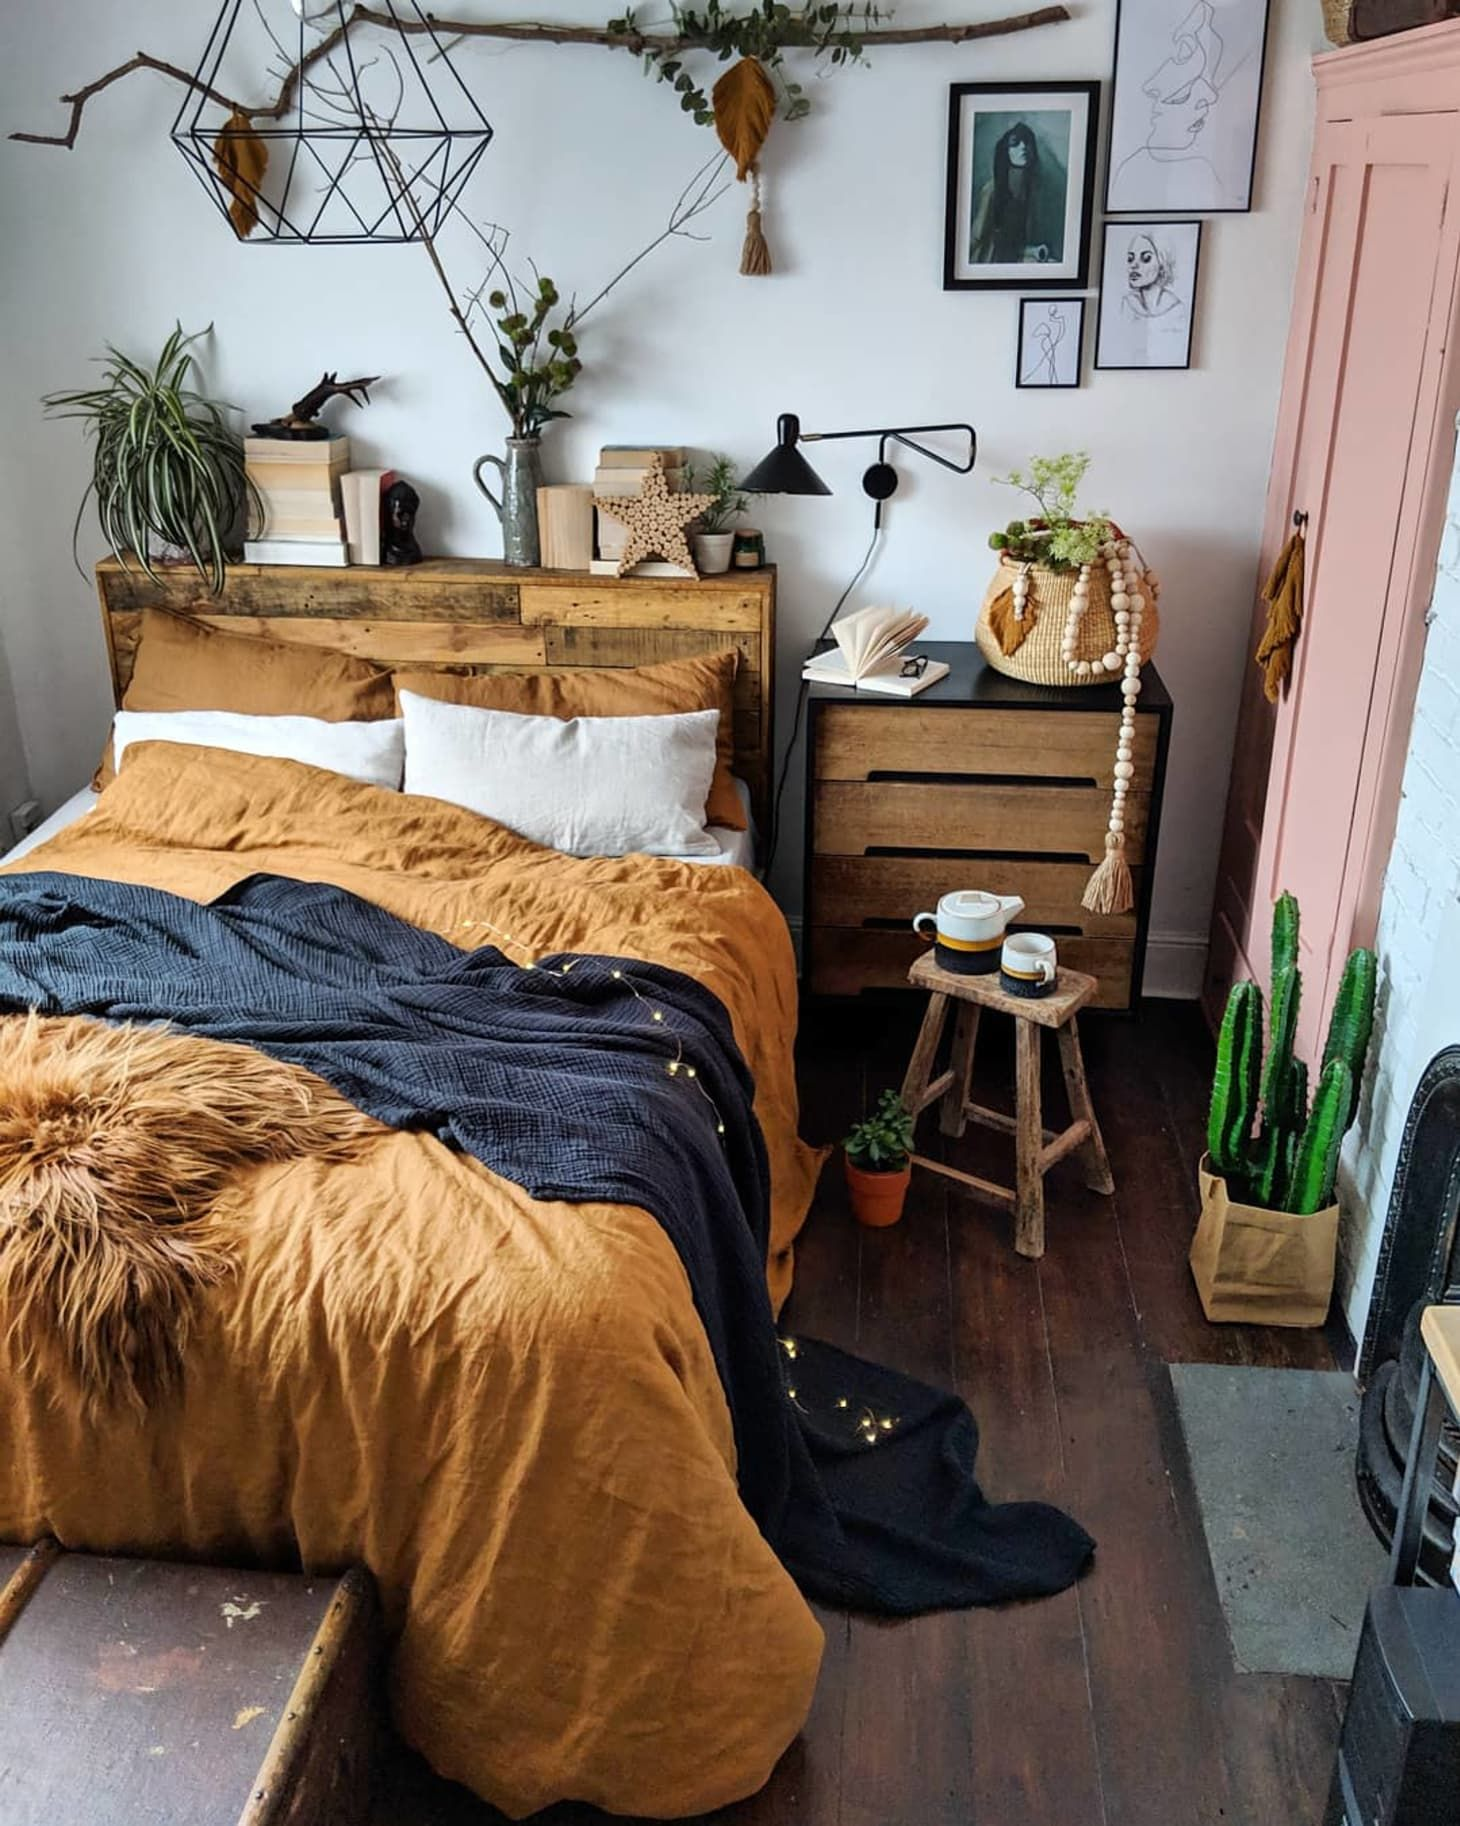 Find Tons of Decor Inspiration in This Quirky and Colorful UK Home